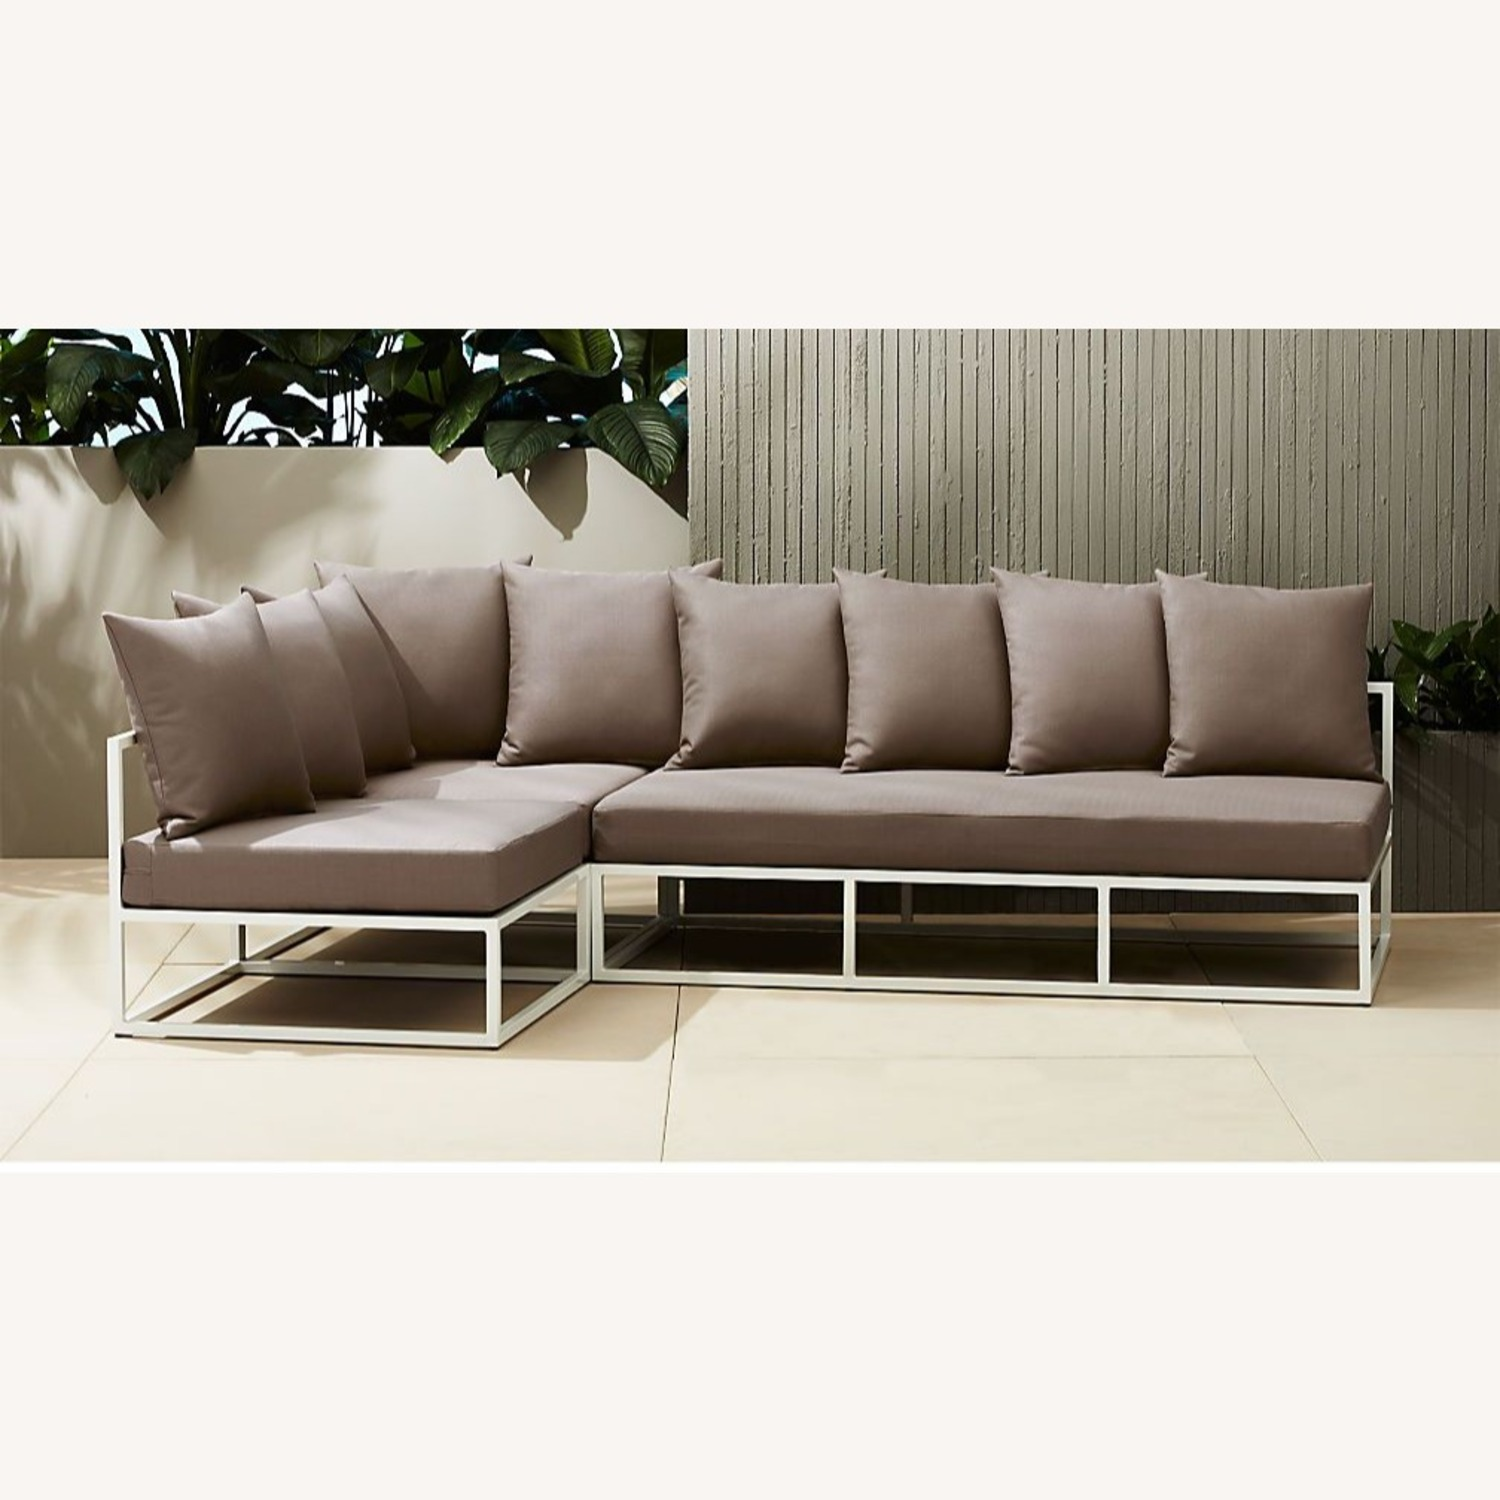 CB2 Casbah Outdoor Sectional Couch - image-1